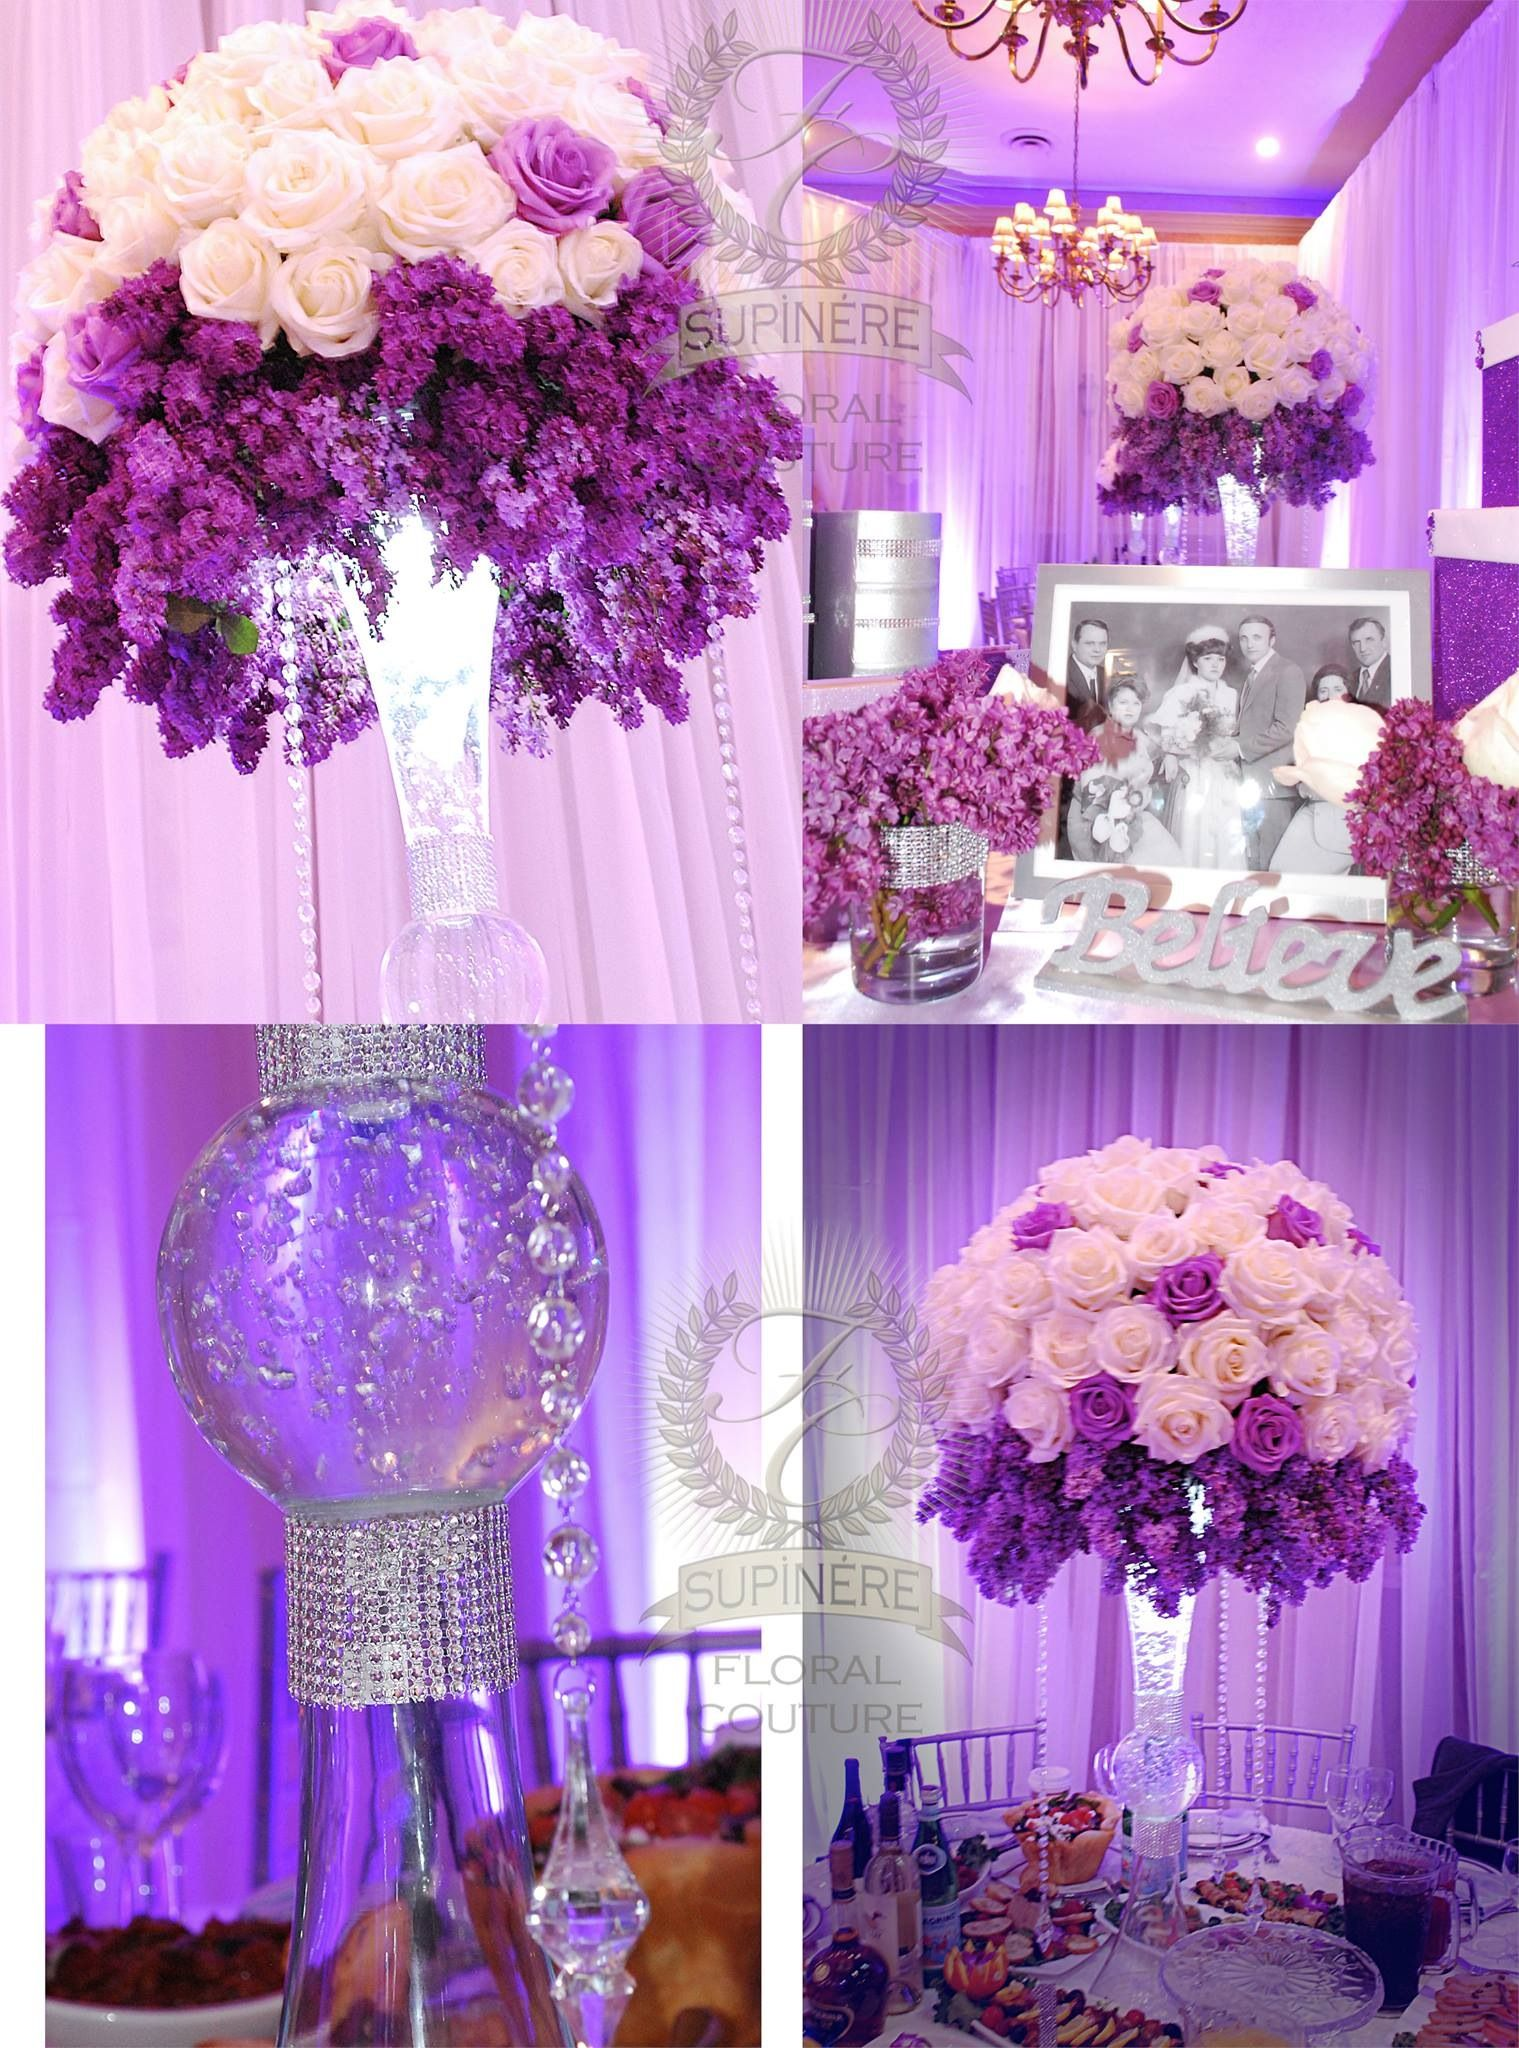 Supinere floral couture, San Francisco . Reception under a canopy of ...